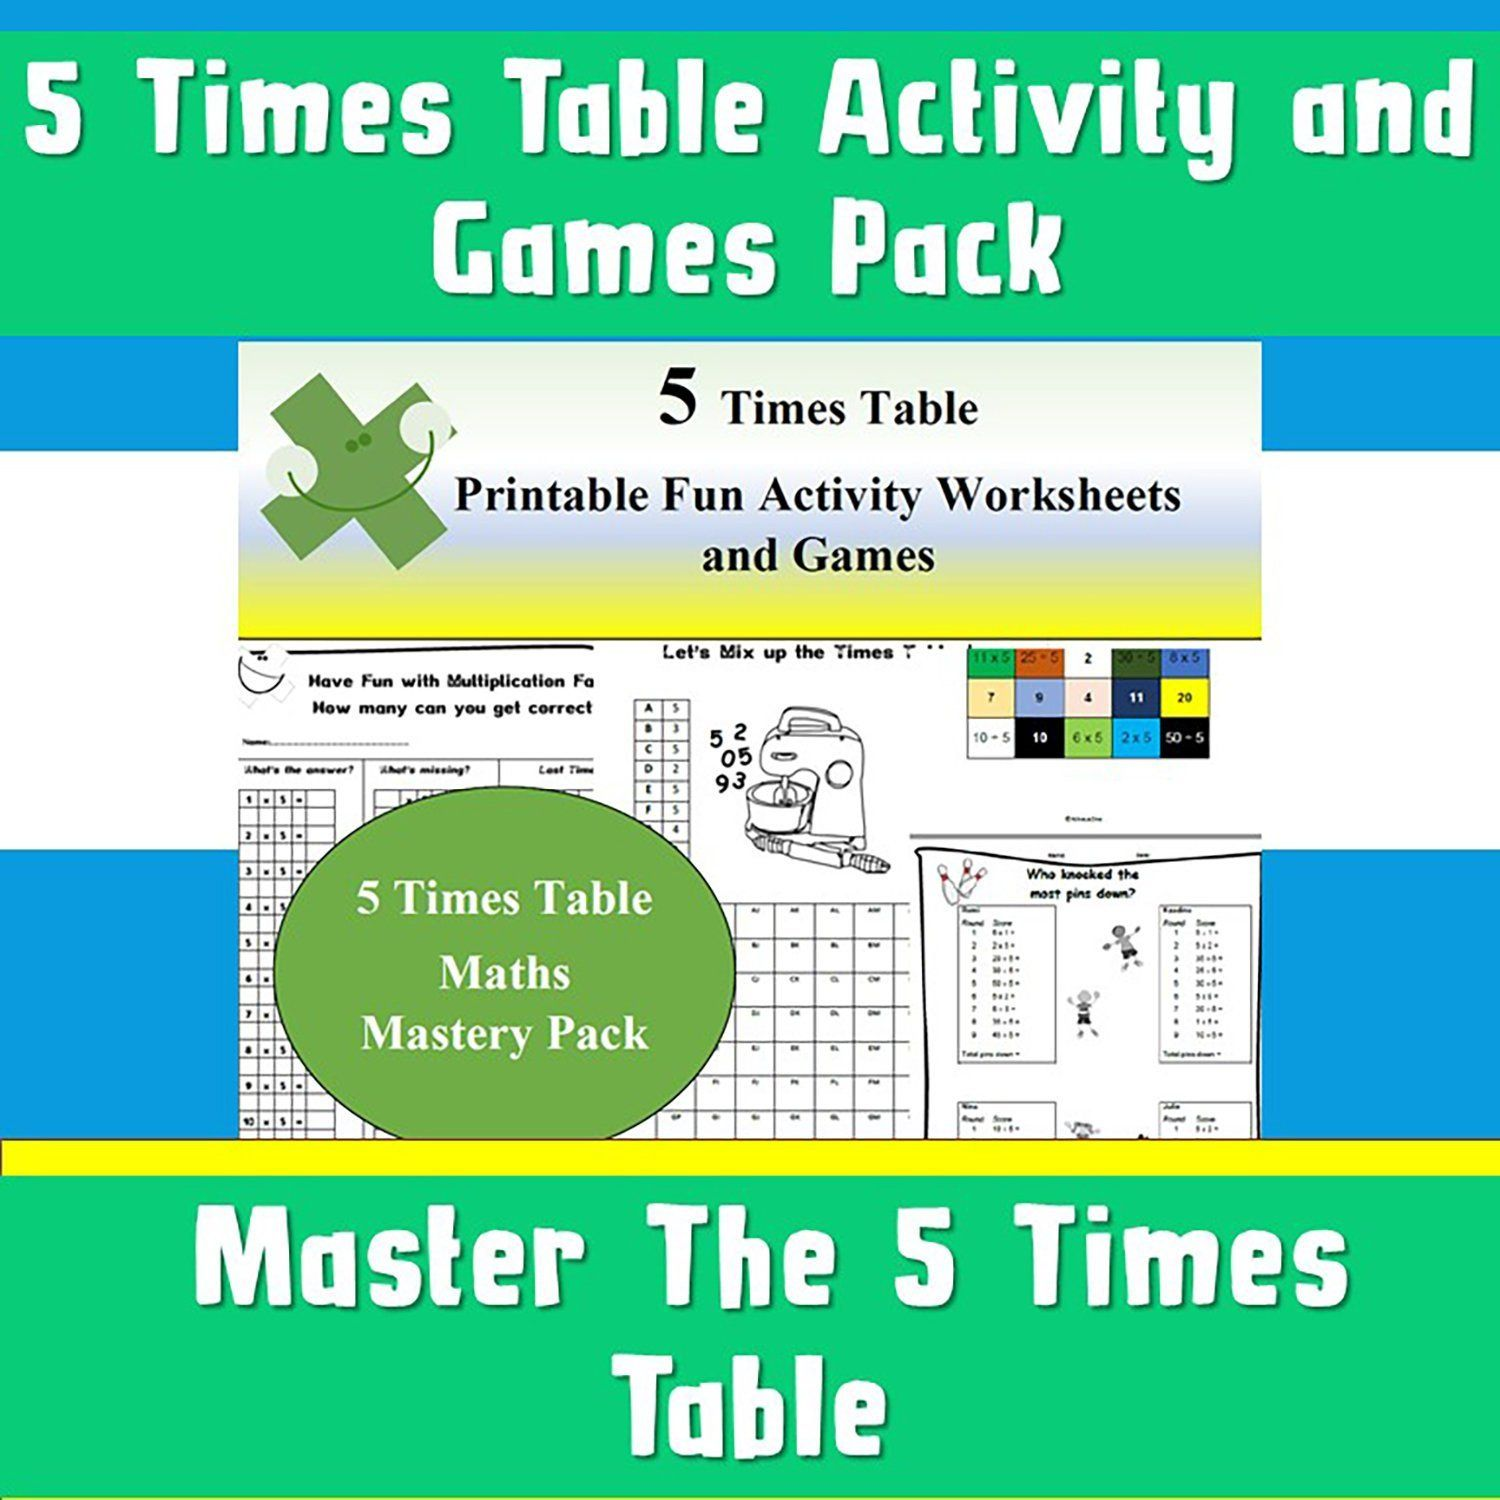 5 Times Table Activity Pack Games Printable Instant